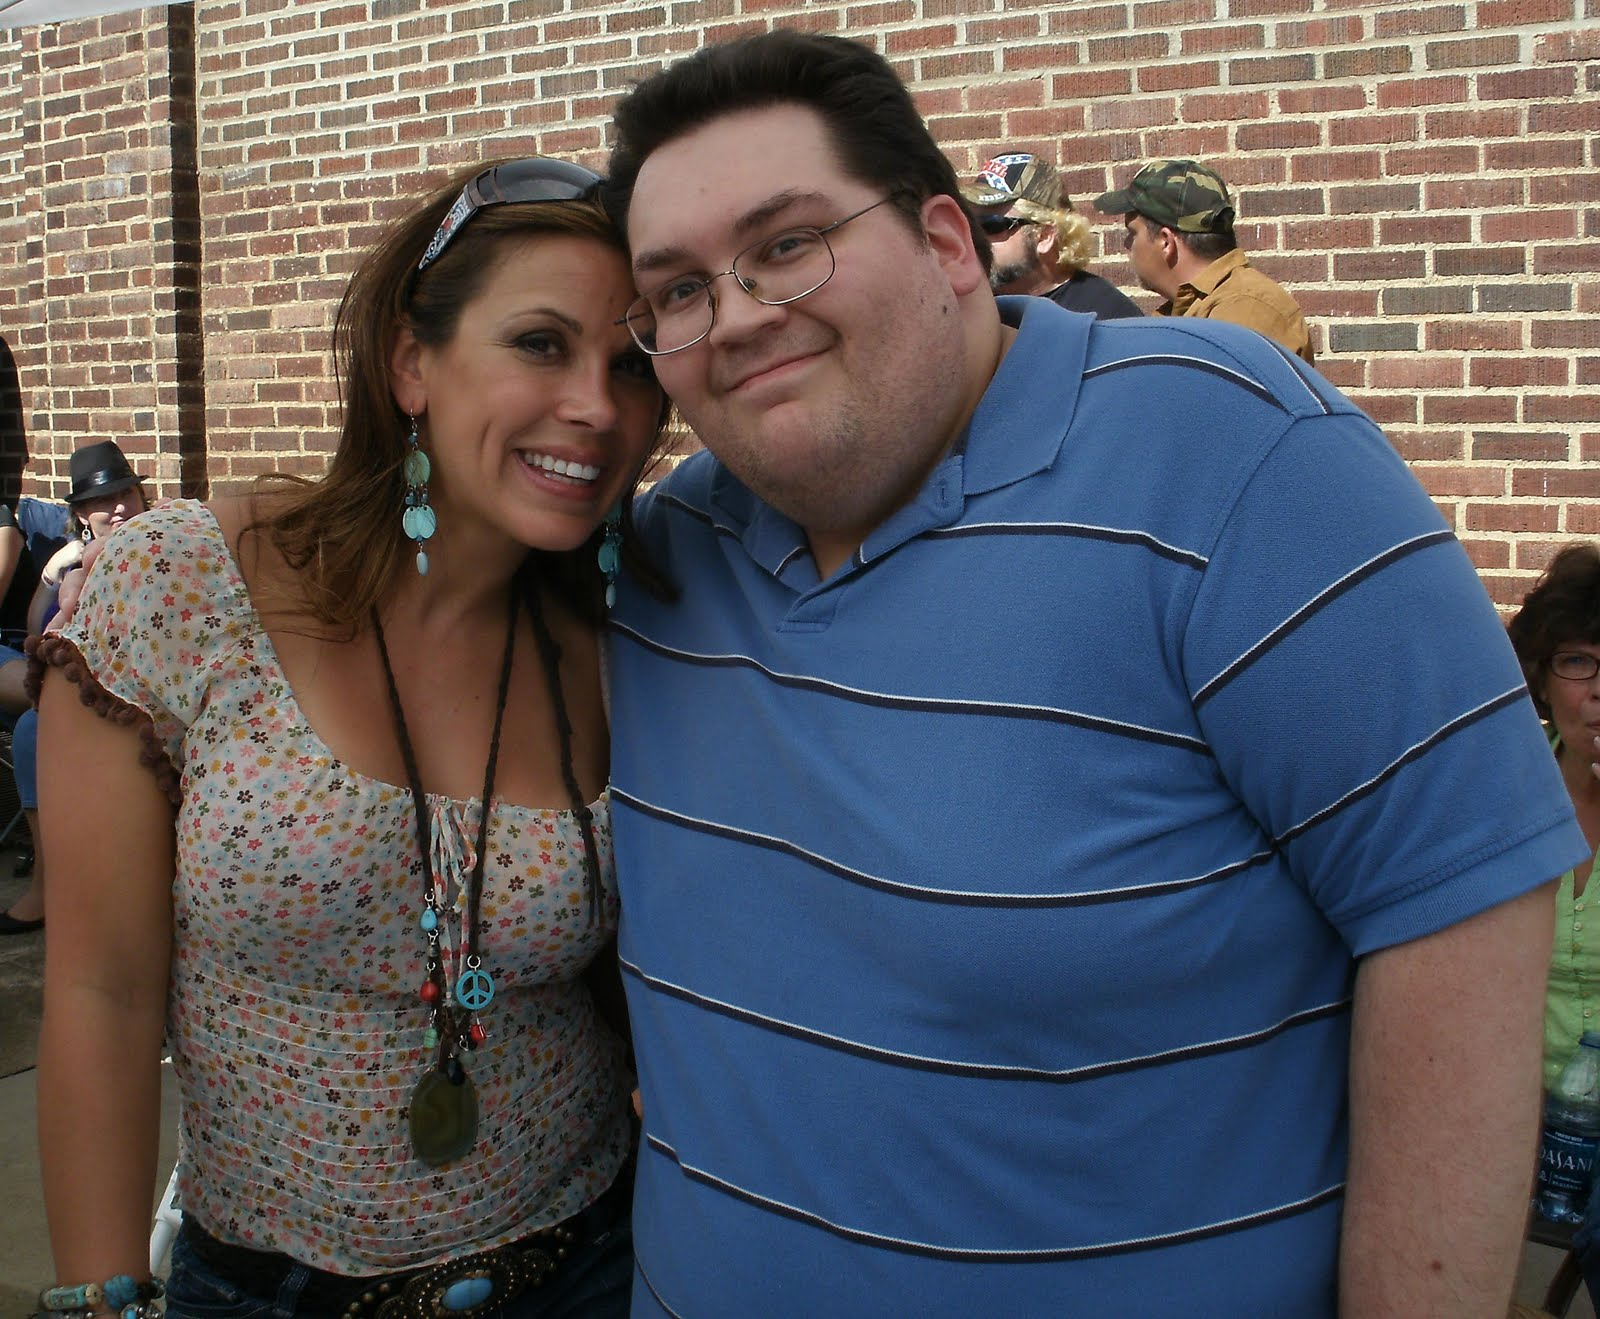 mickie james brutus magnus dating It's been rumored that they are, but there's no definate anwser yet.